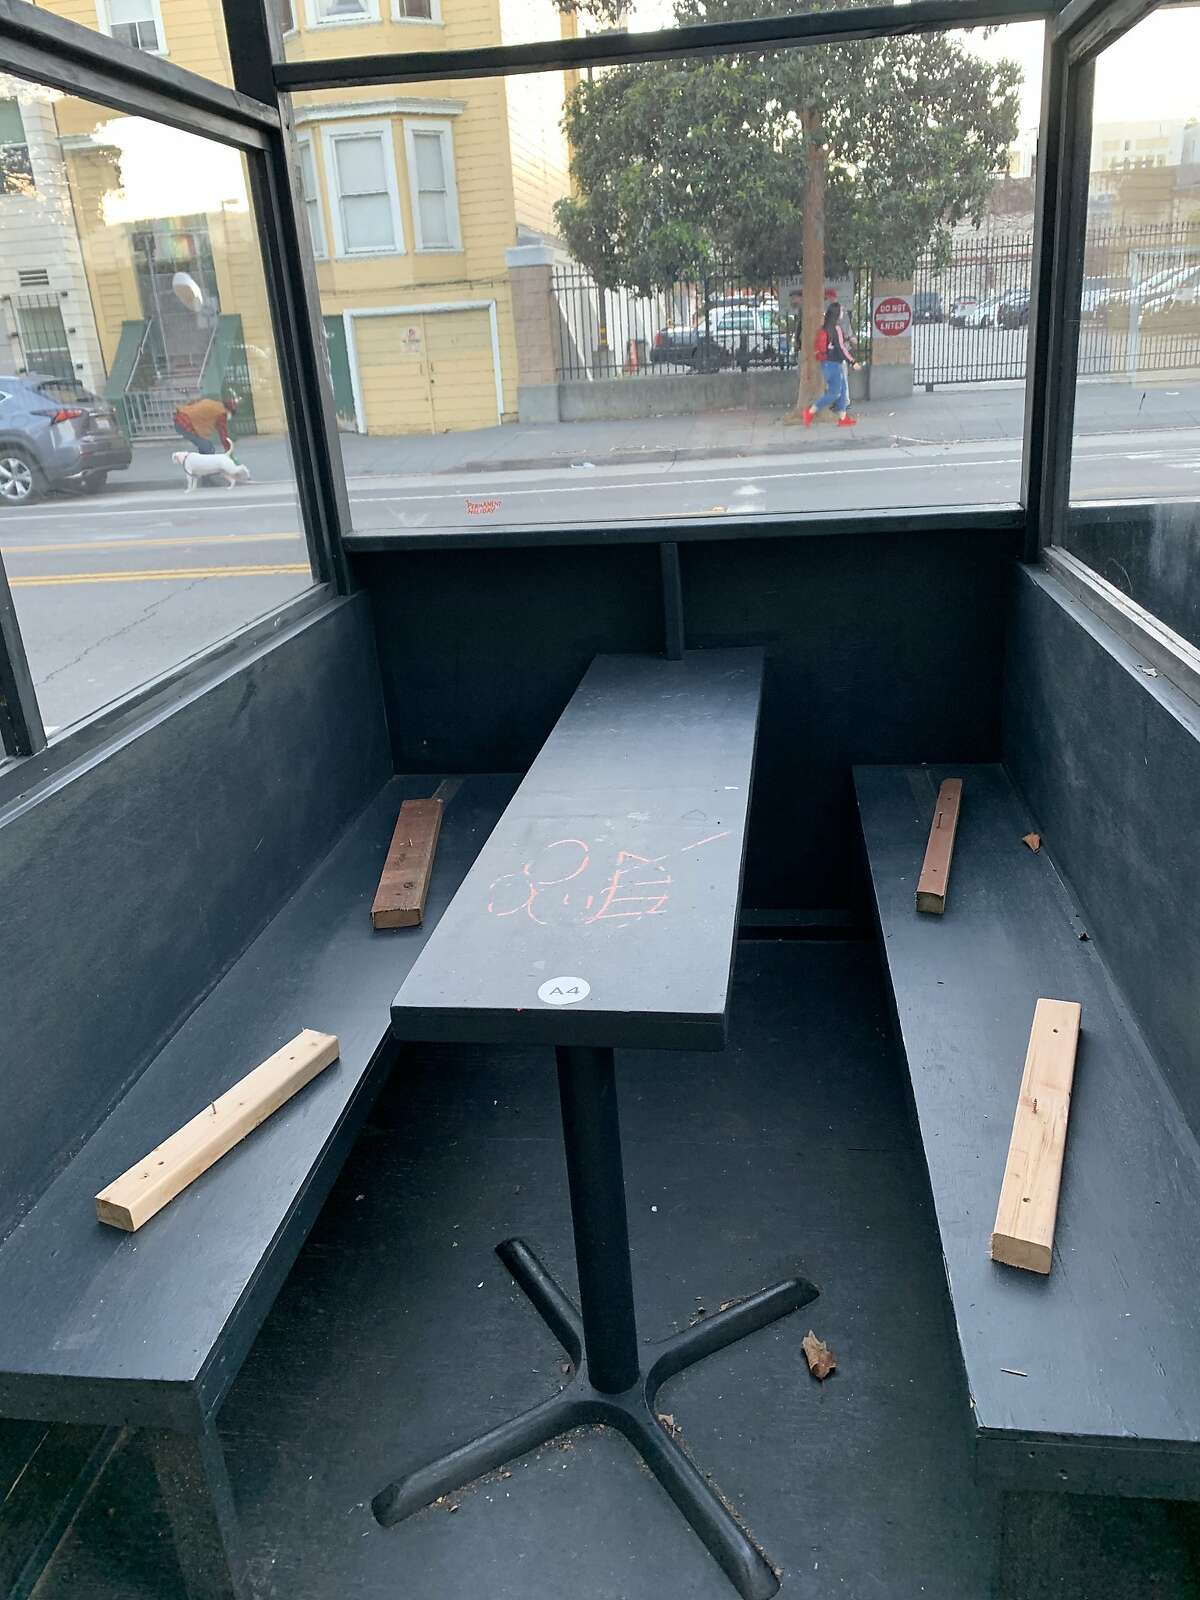 Exposed nails were placed in the parklet outside the Valencia Room. The bar's manager says the parklet was vandalized, and he has filed a police report.